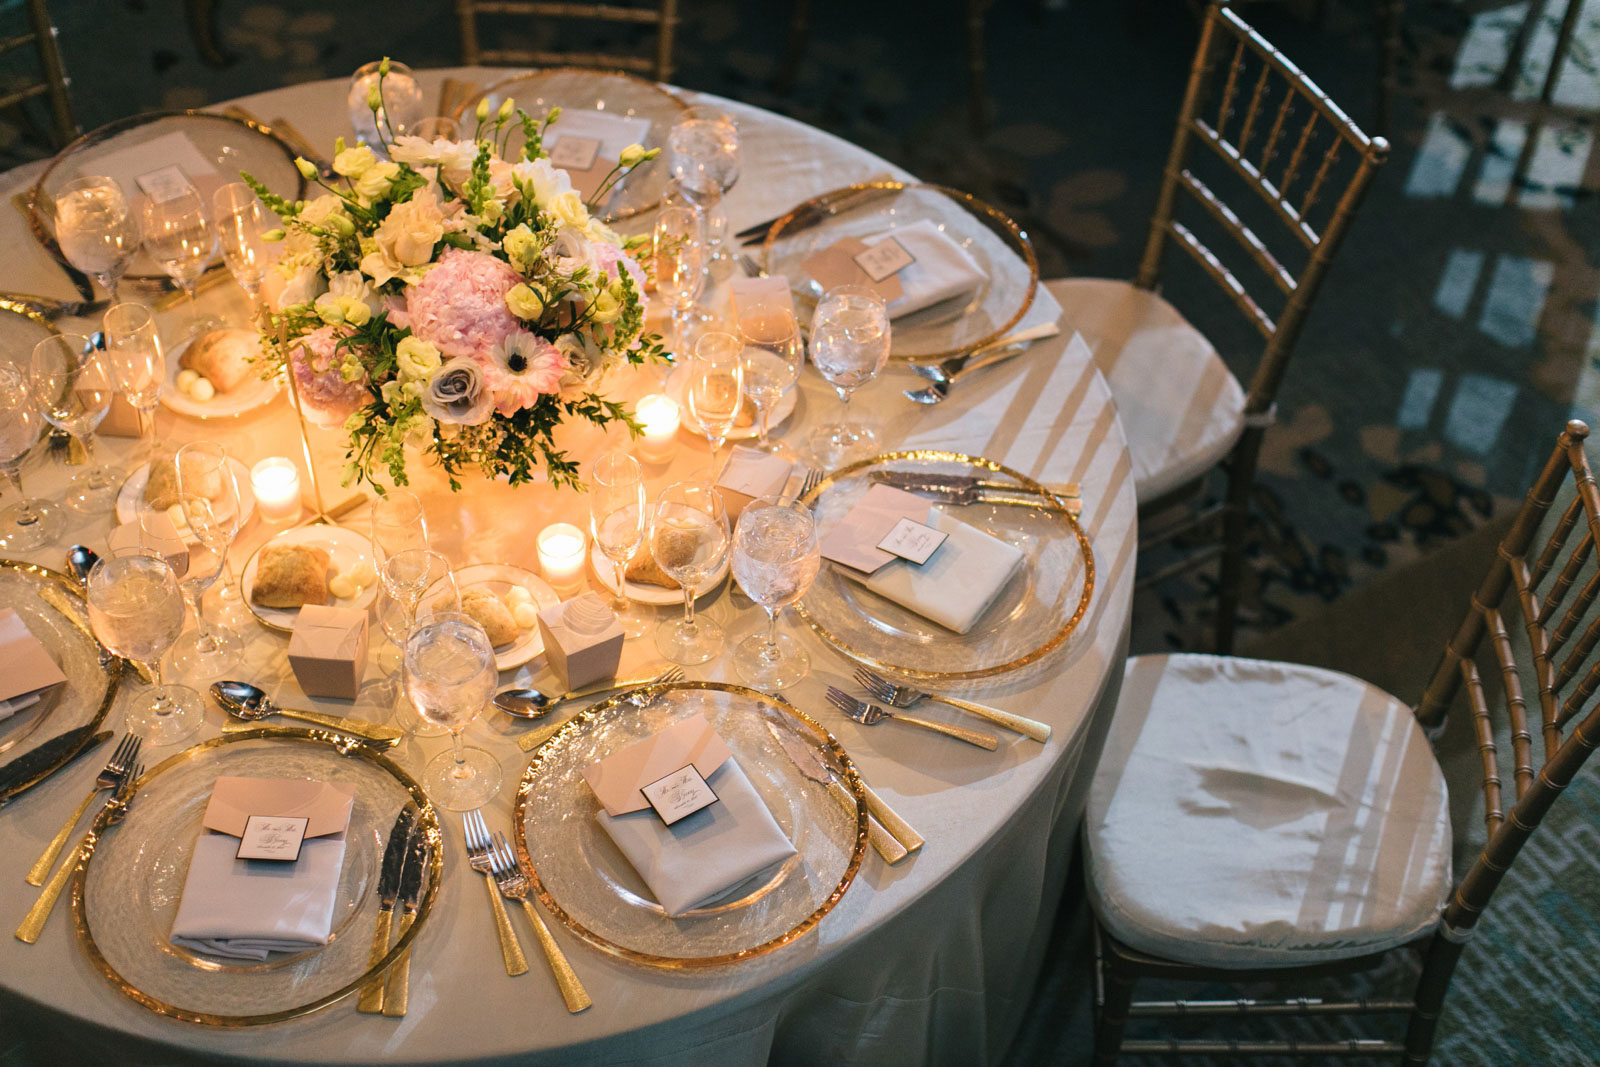 Modern Tablescape with pastel floral centerpiece, gold-rimmed dishes, and warm candle light